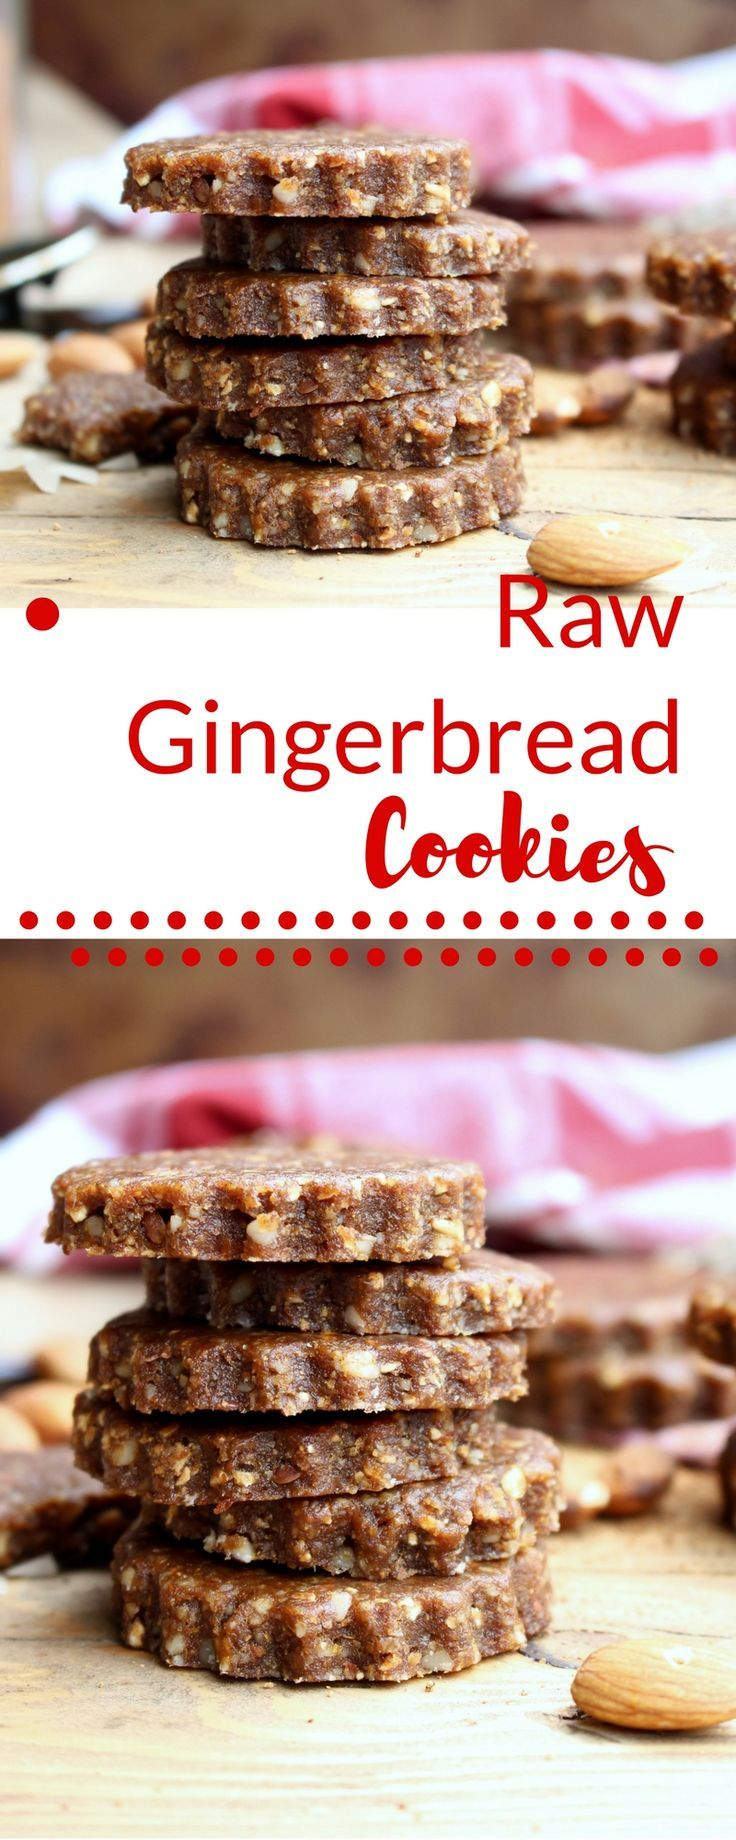 Healthy | vegan cookies | gingerbread | raw desserts | Make these vegan gingerbread cookies when you need to satisfy your gingerbread craving quickly! Gluten free and with no refined sugar, these raw treats are perfect for snack or dessert!